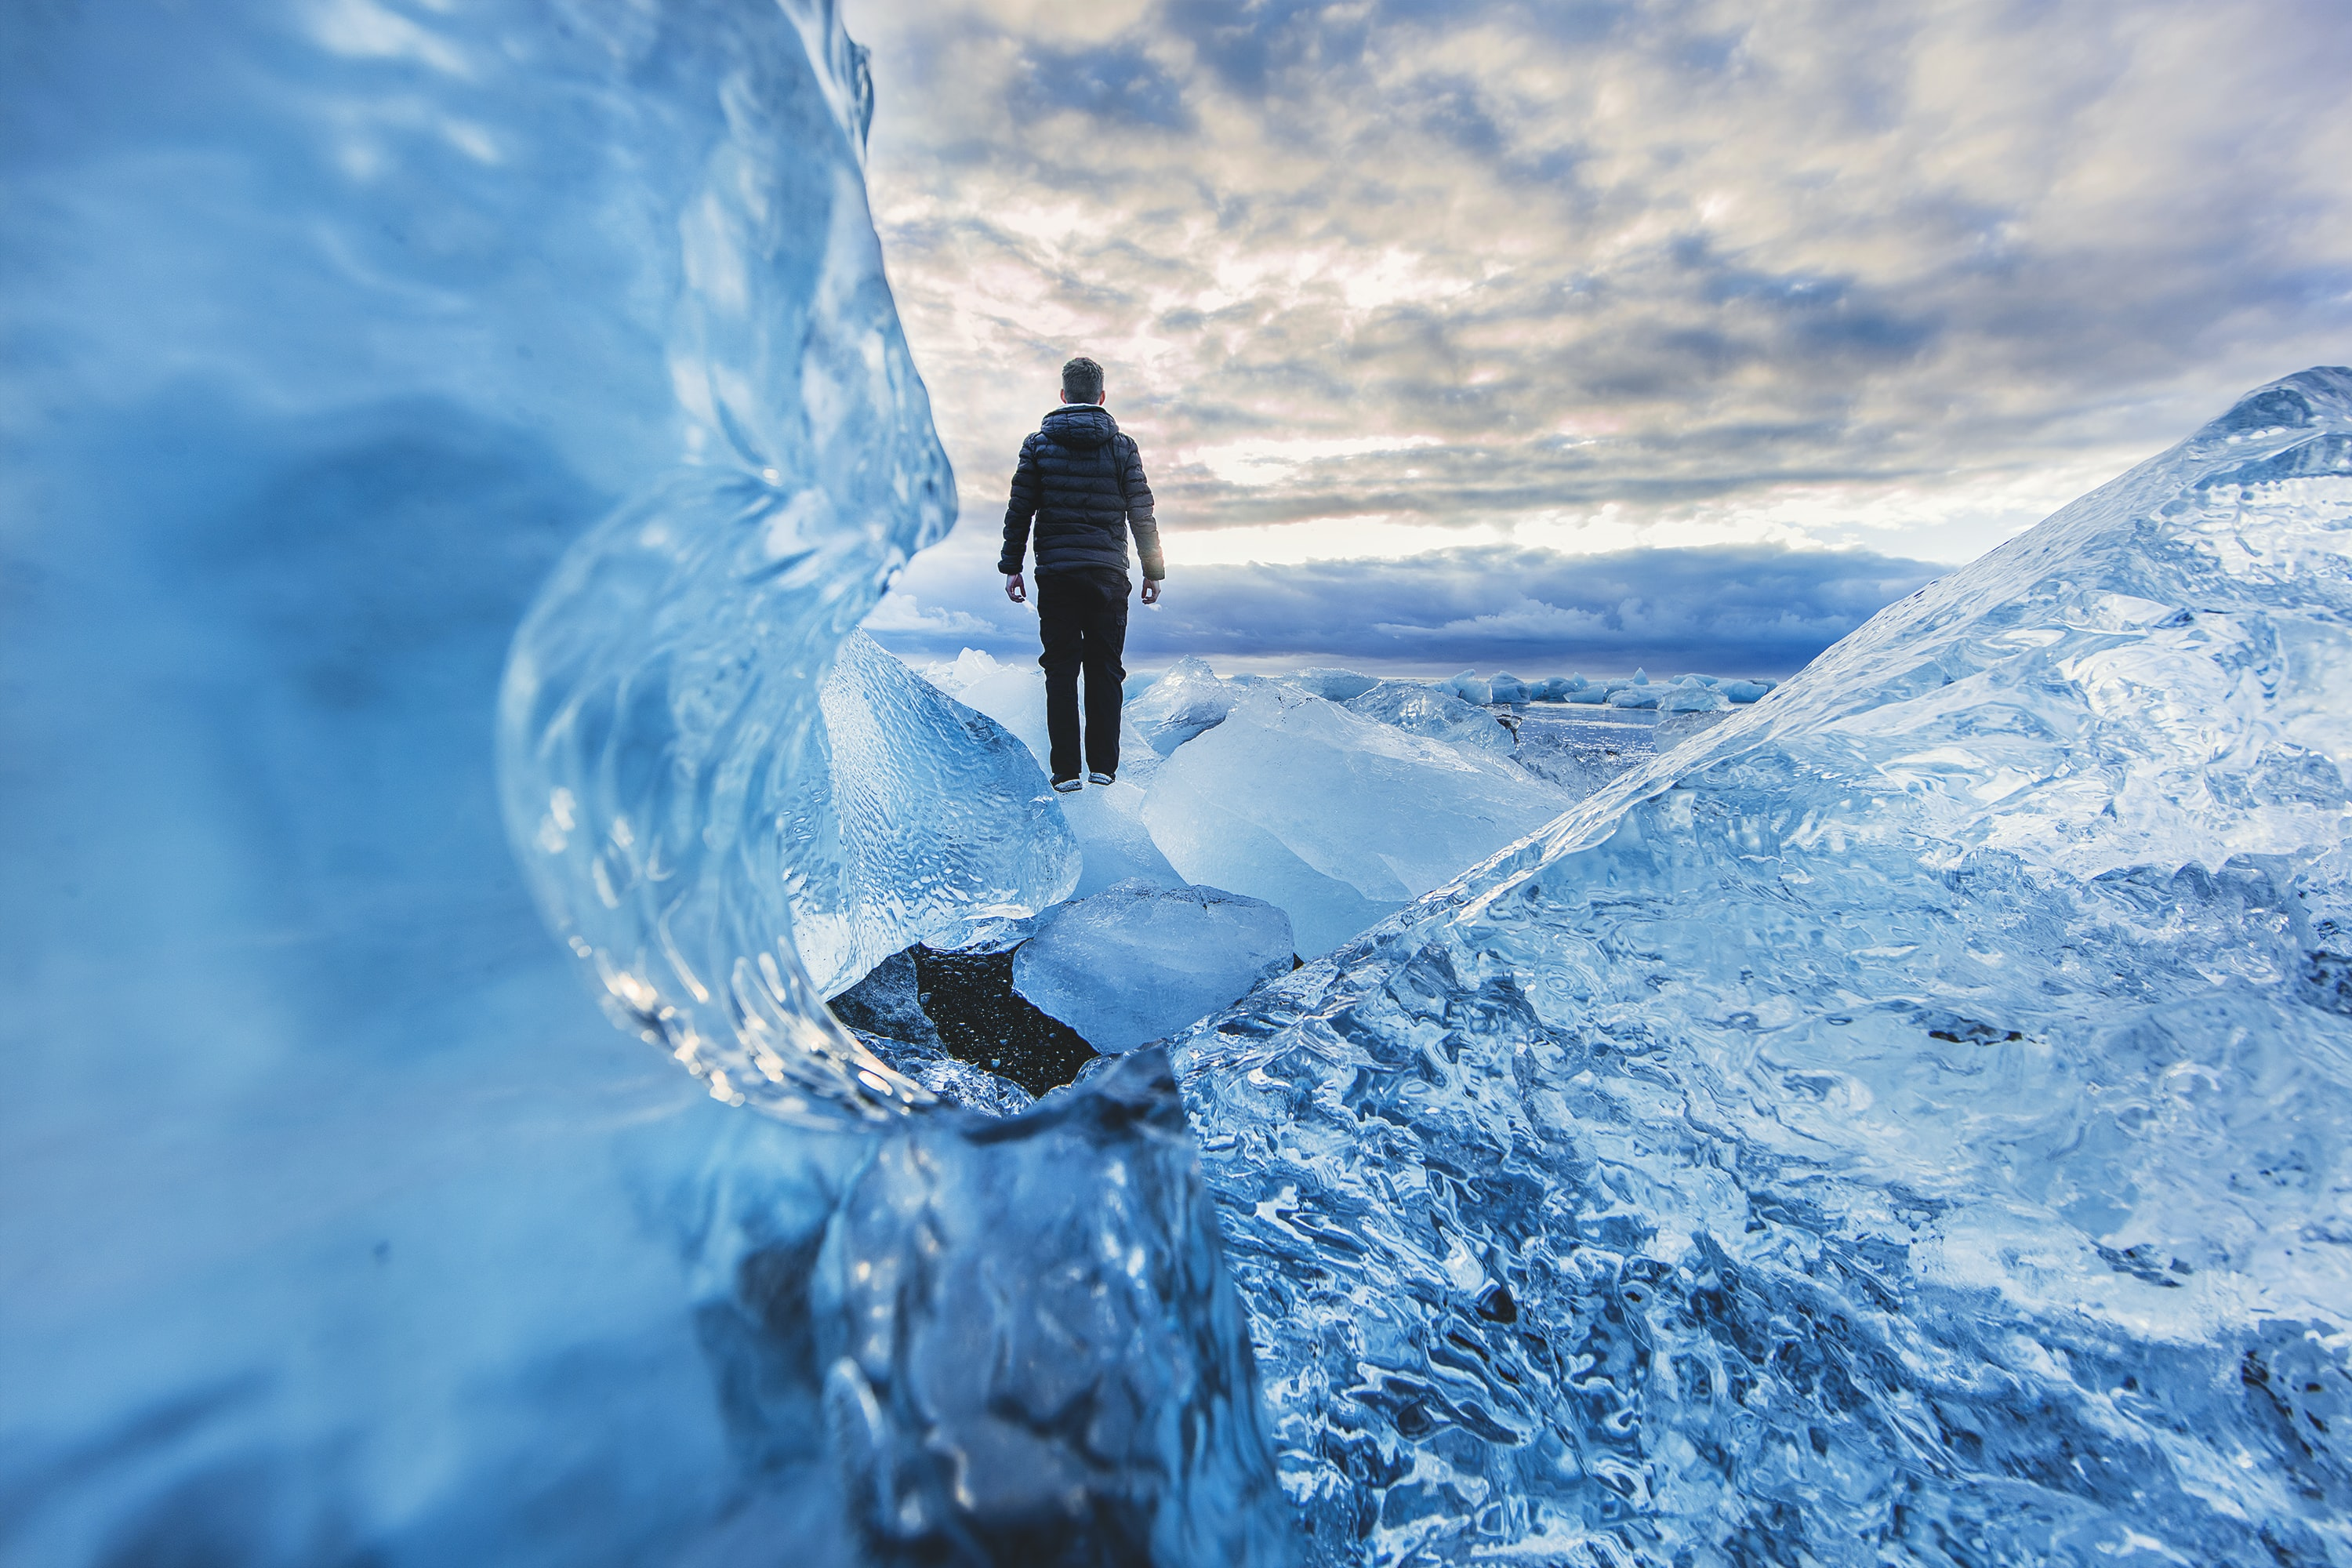 A person standing on frozen water in Jökulsárlón